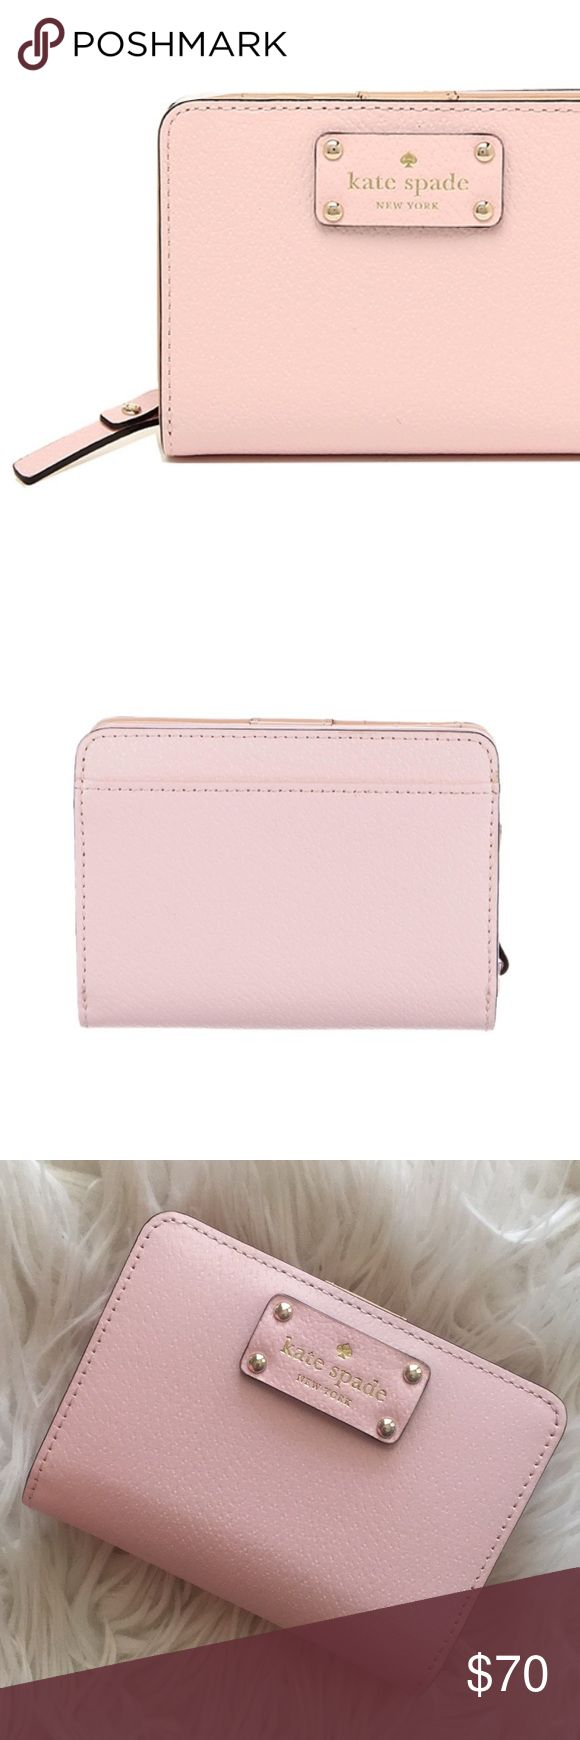 Kate Spade Wellesley Cara Wallet Kate Spade Wellesley Cara Wallet - posypink  BRAND NEW, WITH TAGS!   Purchased a a couple months ago and never used it!  PERFECT for spring/summer 😍  Care card included! kate spade Bags Wallets